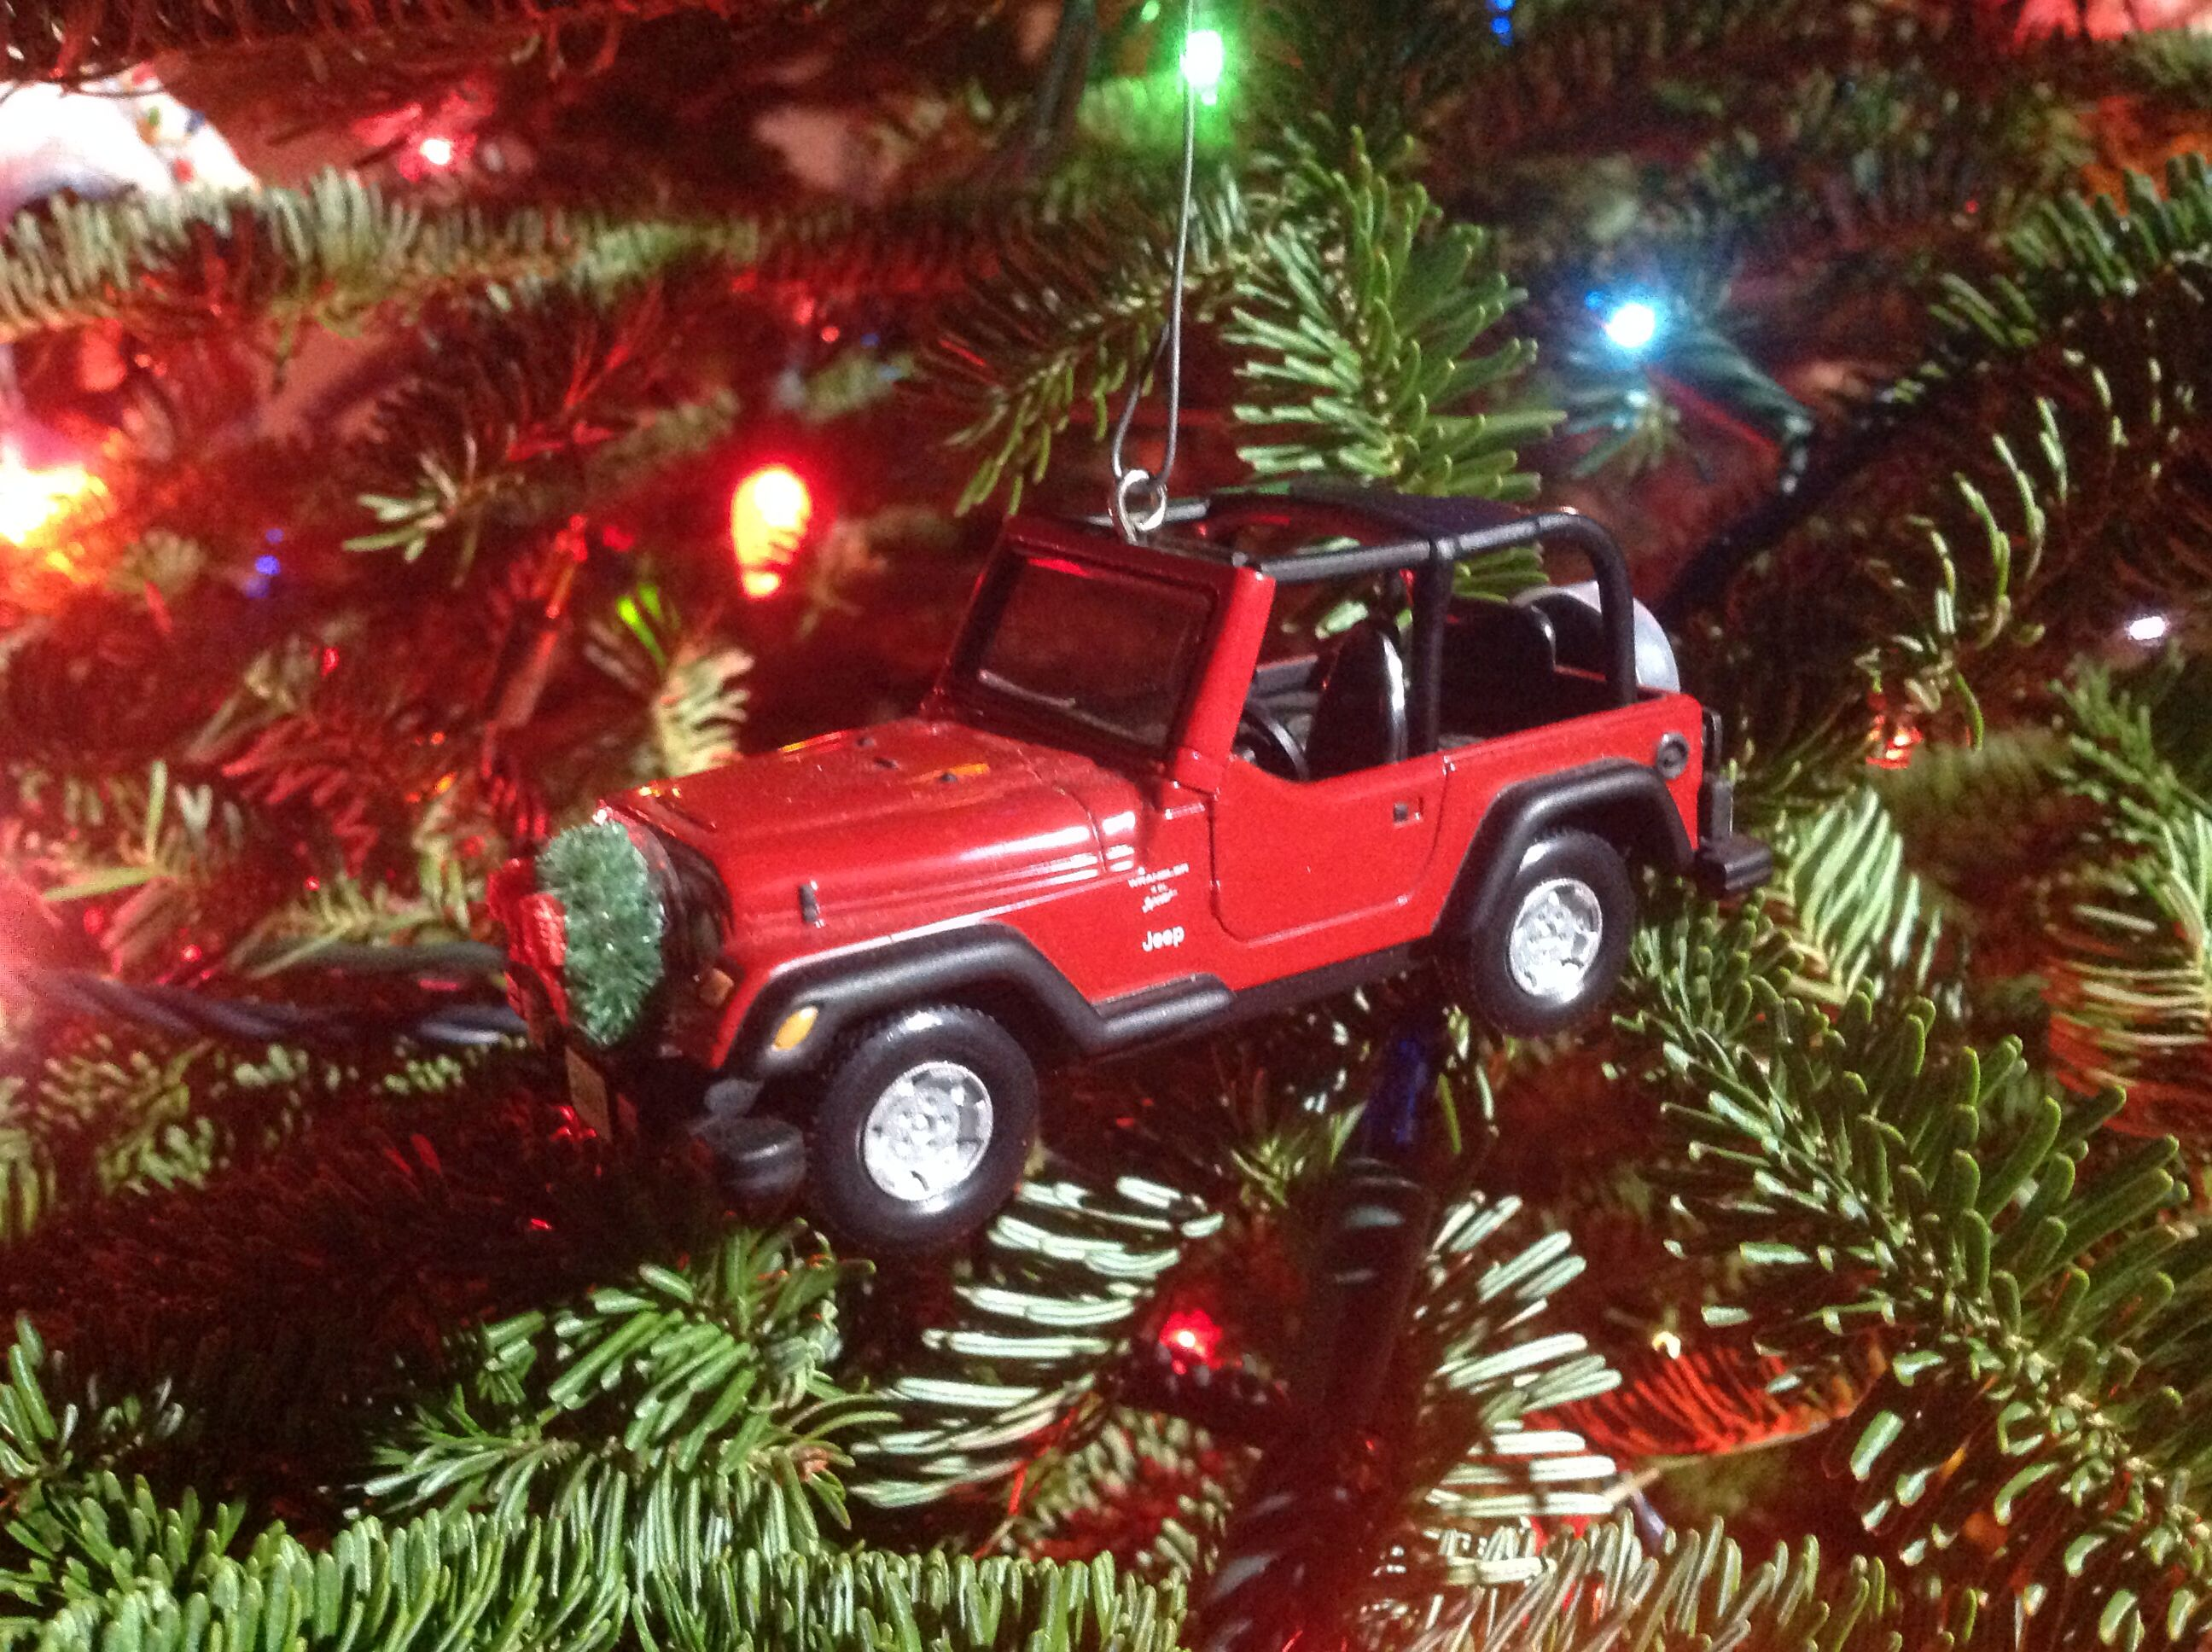 Jeep Christmas Ornament.Jeep Holiday Ornament I Heart Jeeps Red Jeep Wrangler